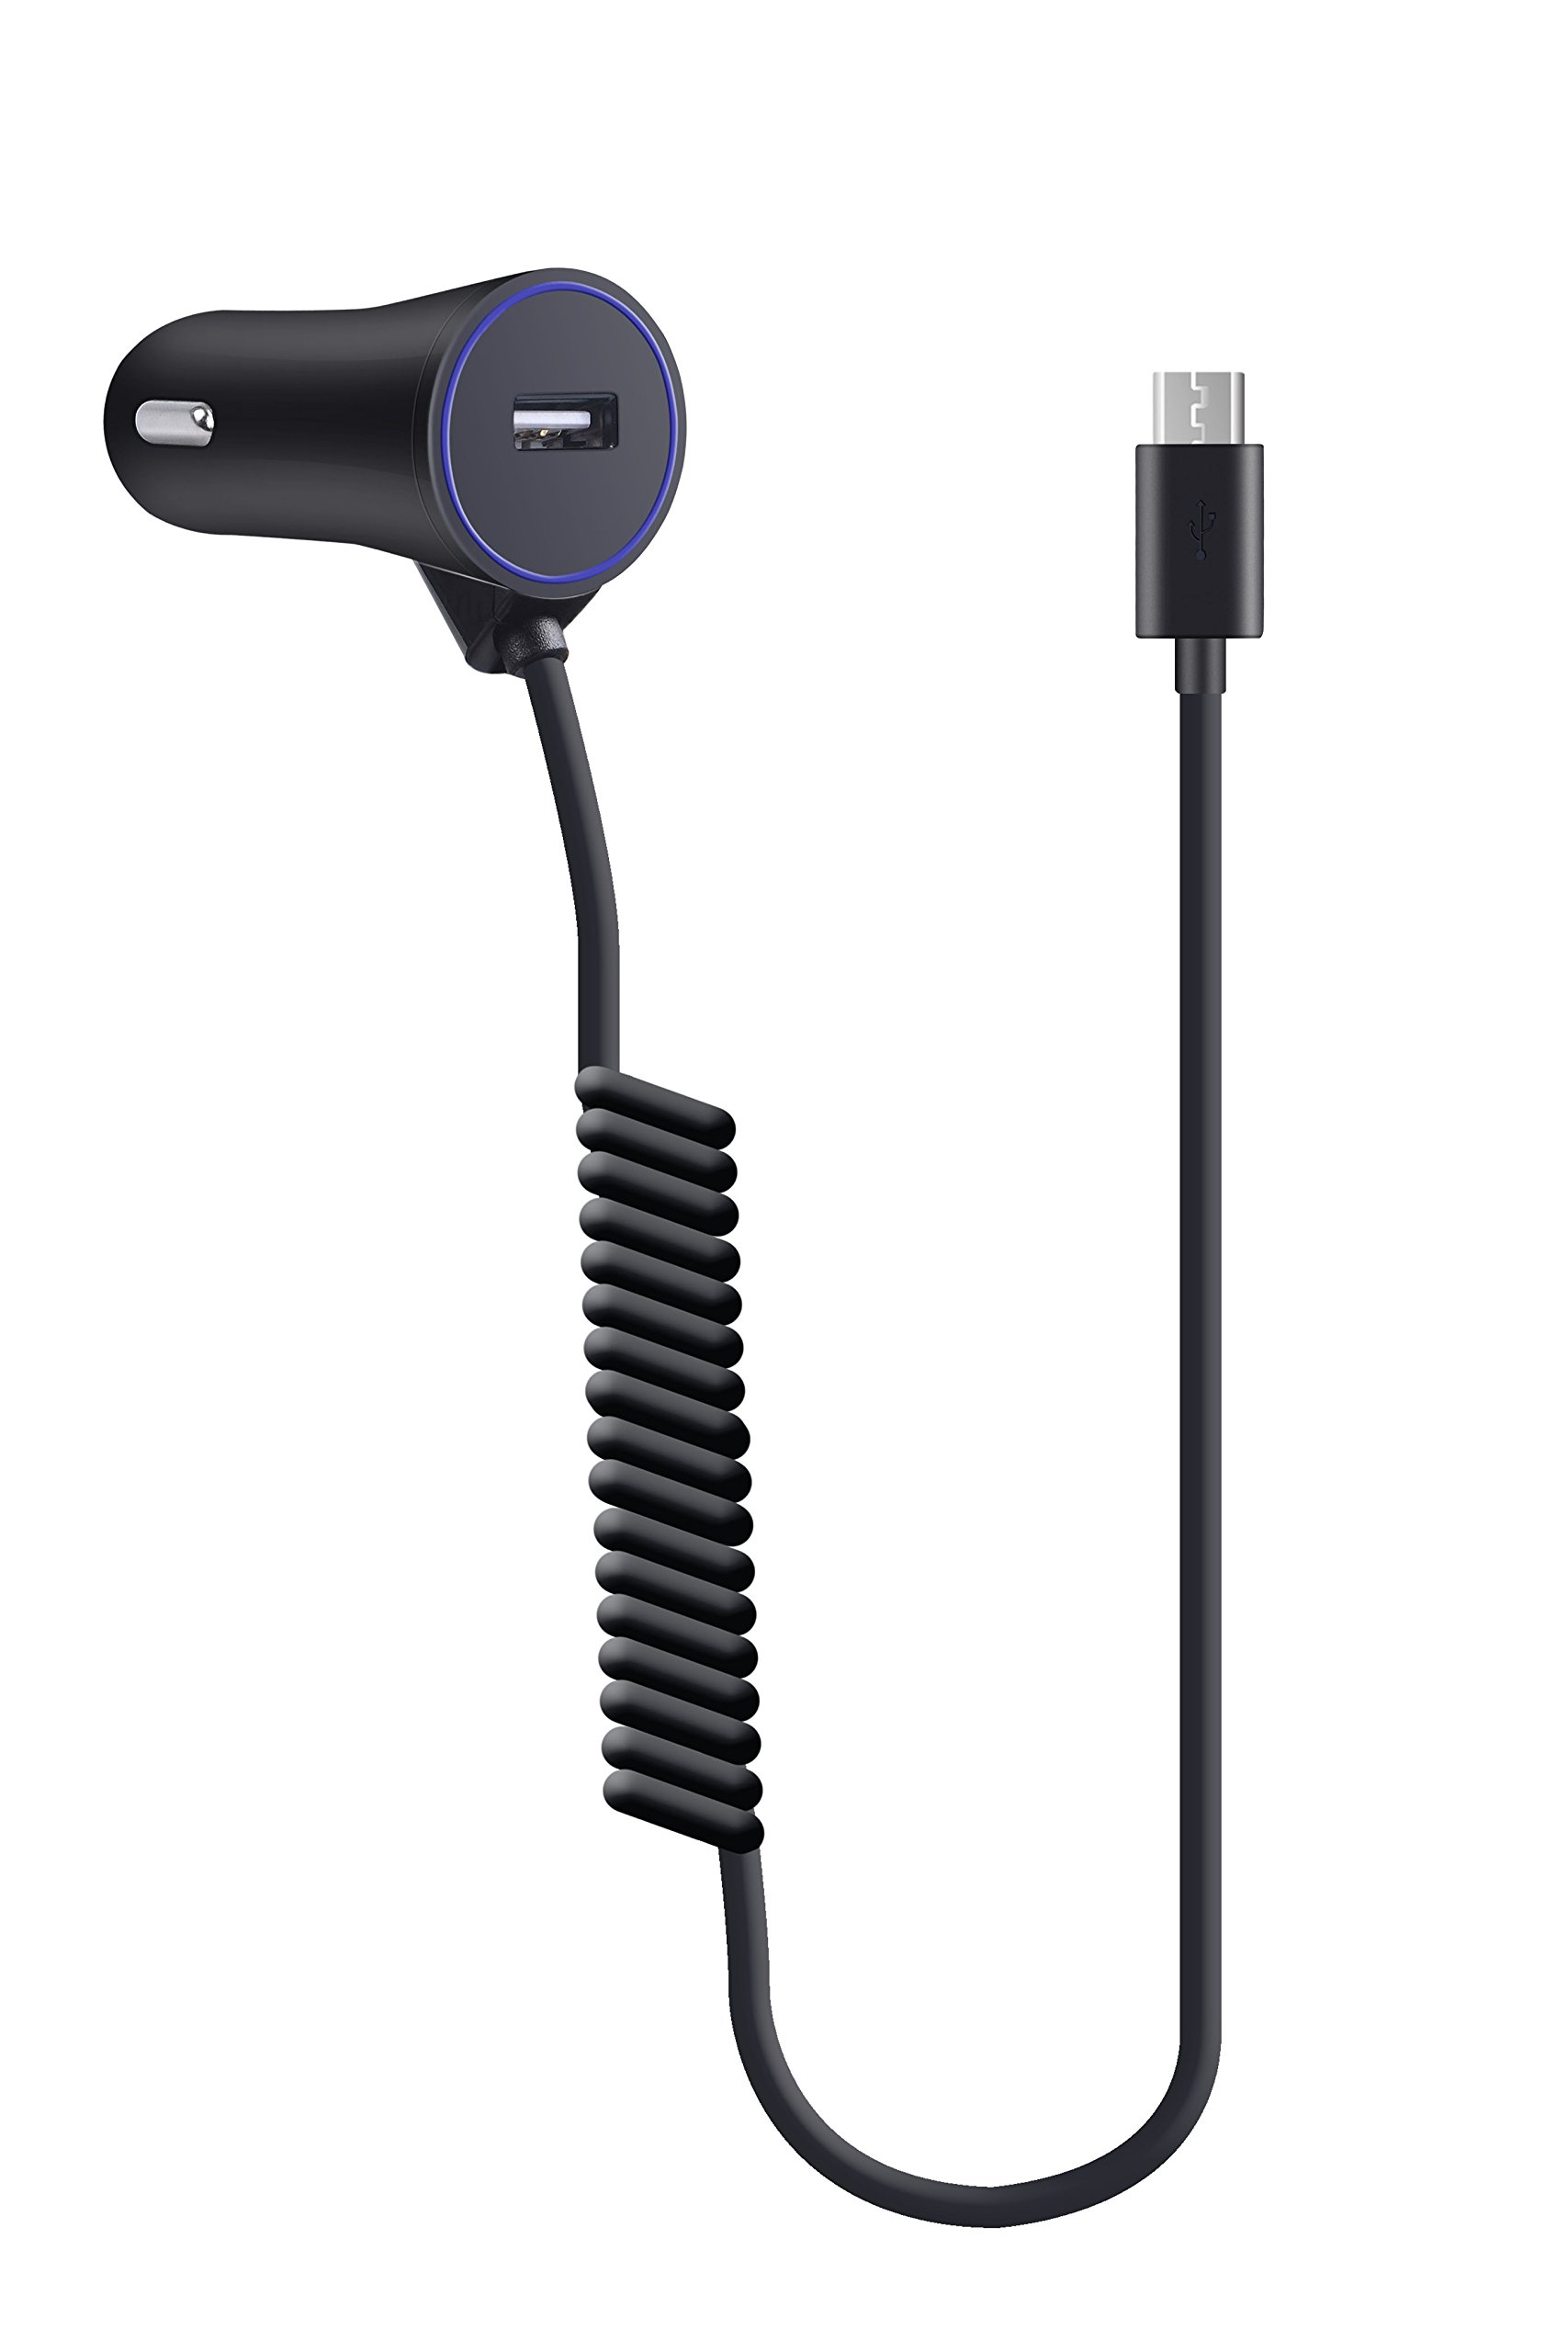 "For Amazon Kindle Fire HD 6 / Fire HD 8 / Fire HD 10 / Fire HDX 7"" / Fire HDX 8.9"" Tablet Premium 2.4A Power Car Charger"